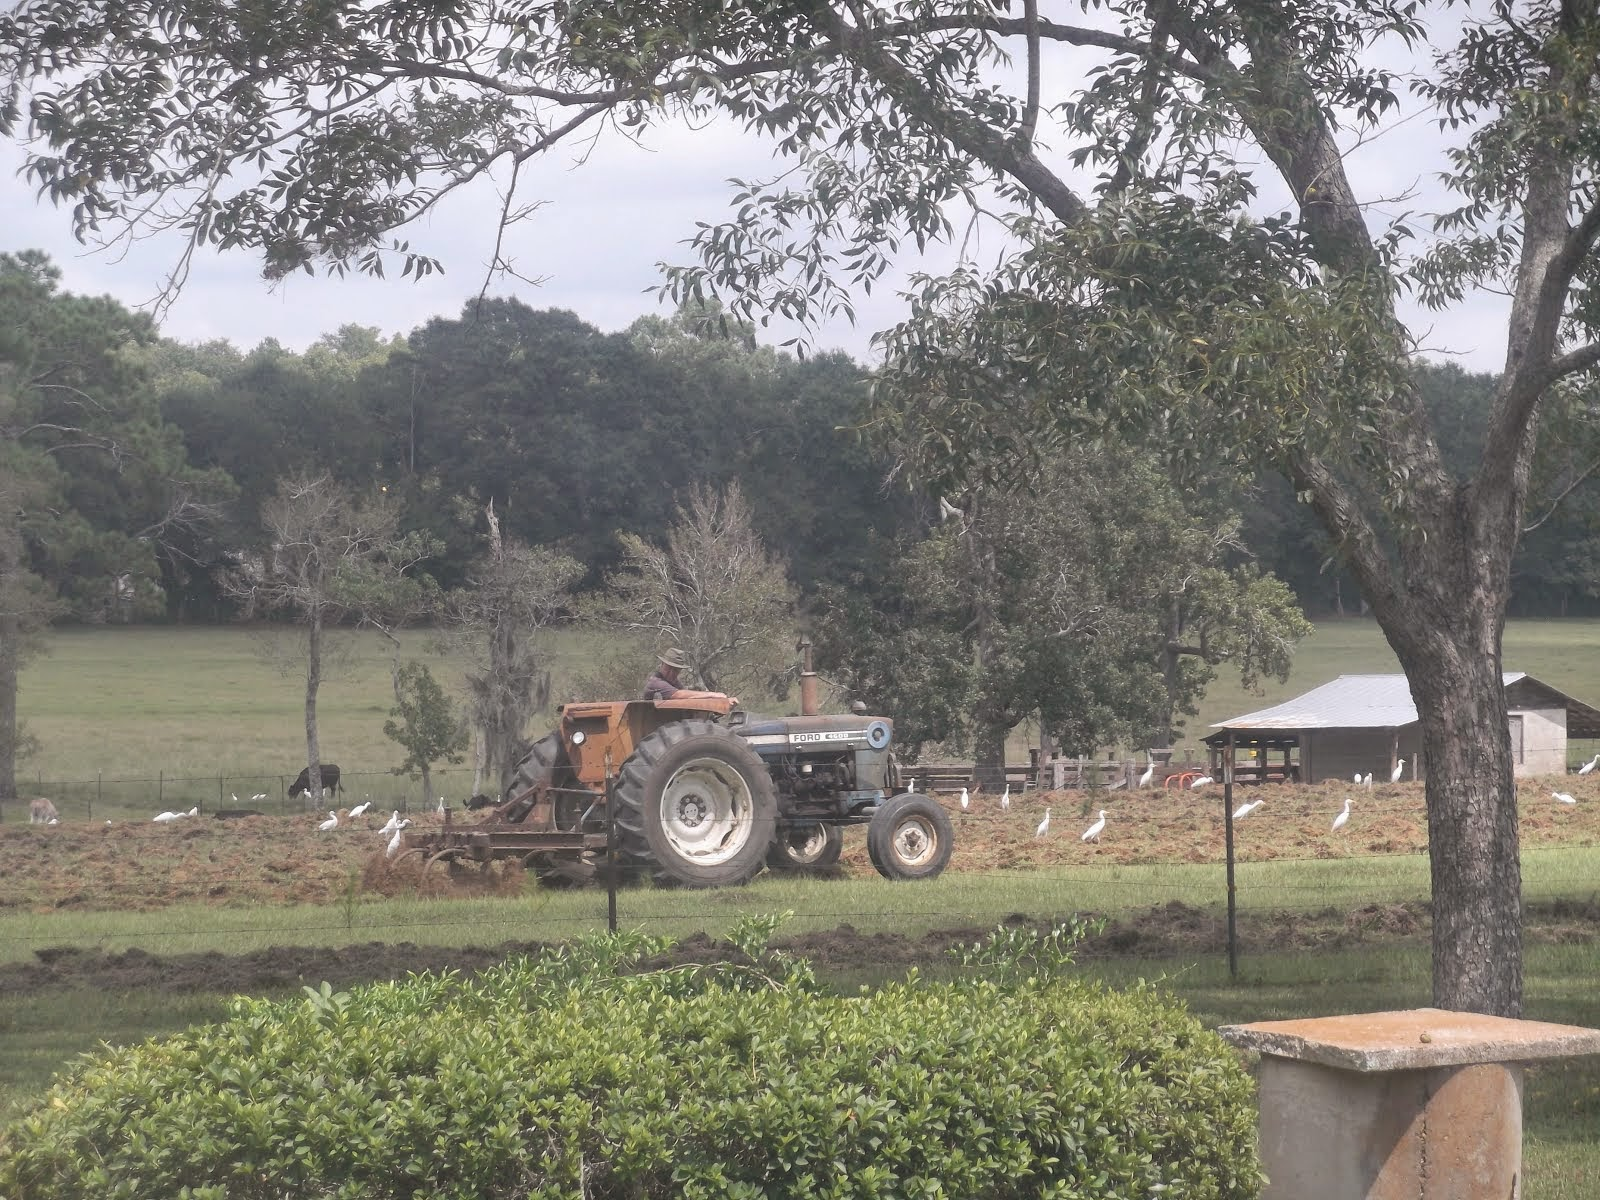 The ranch where Elder Winterton & Elder Foster live.  Their landlord is on the tractor.